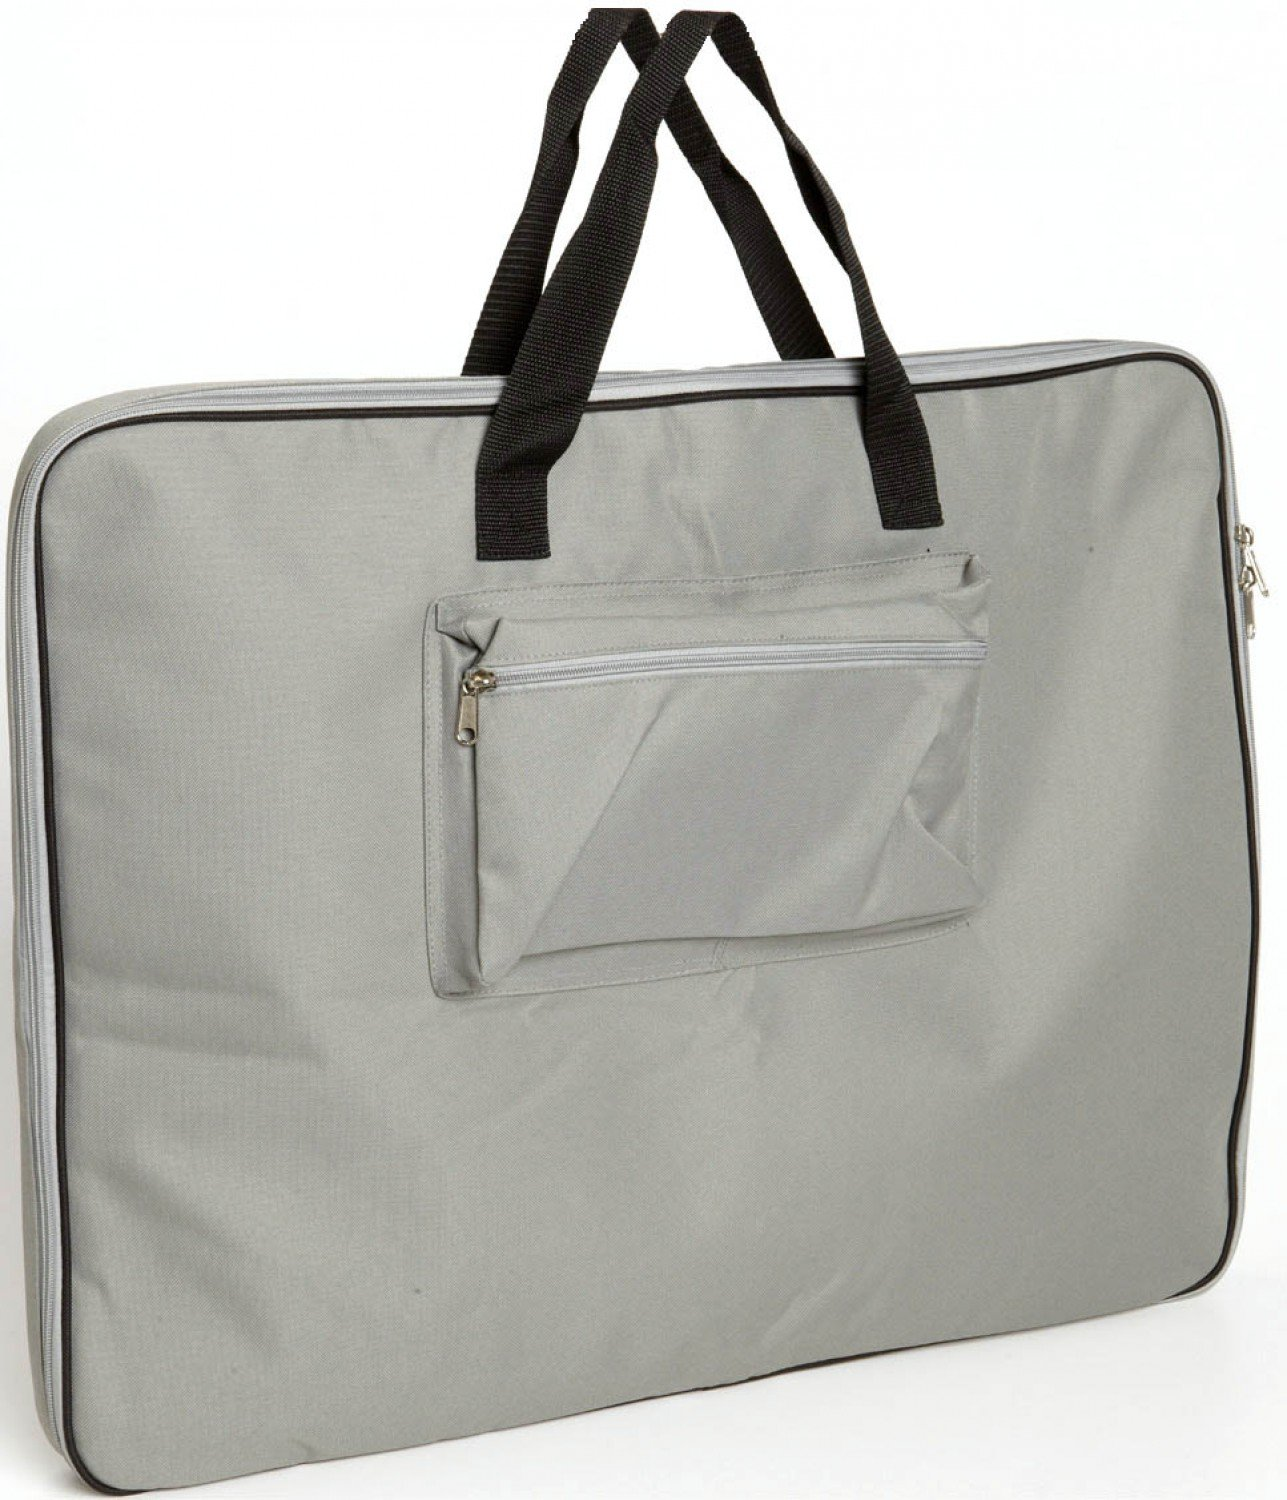 Sew Steady Travel Bag Big 26in Tall x 26in Wide